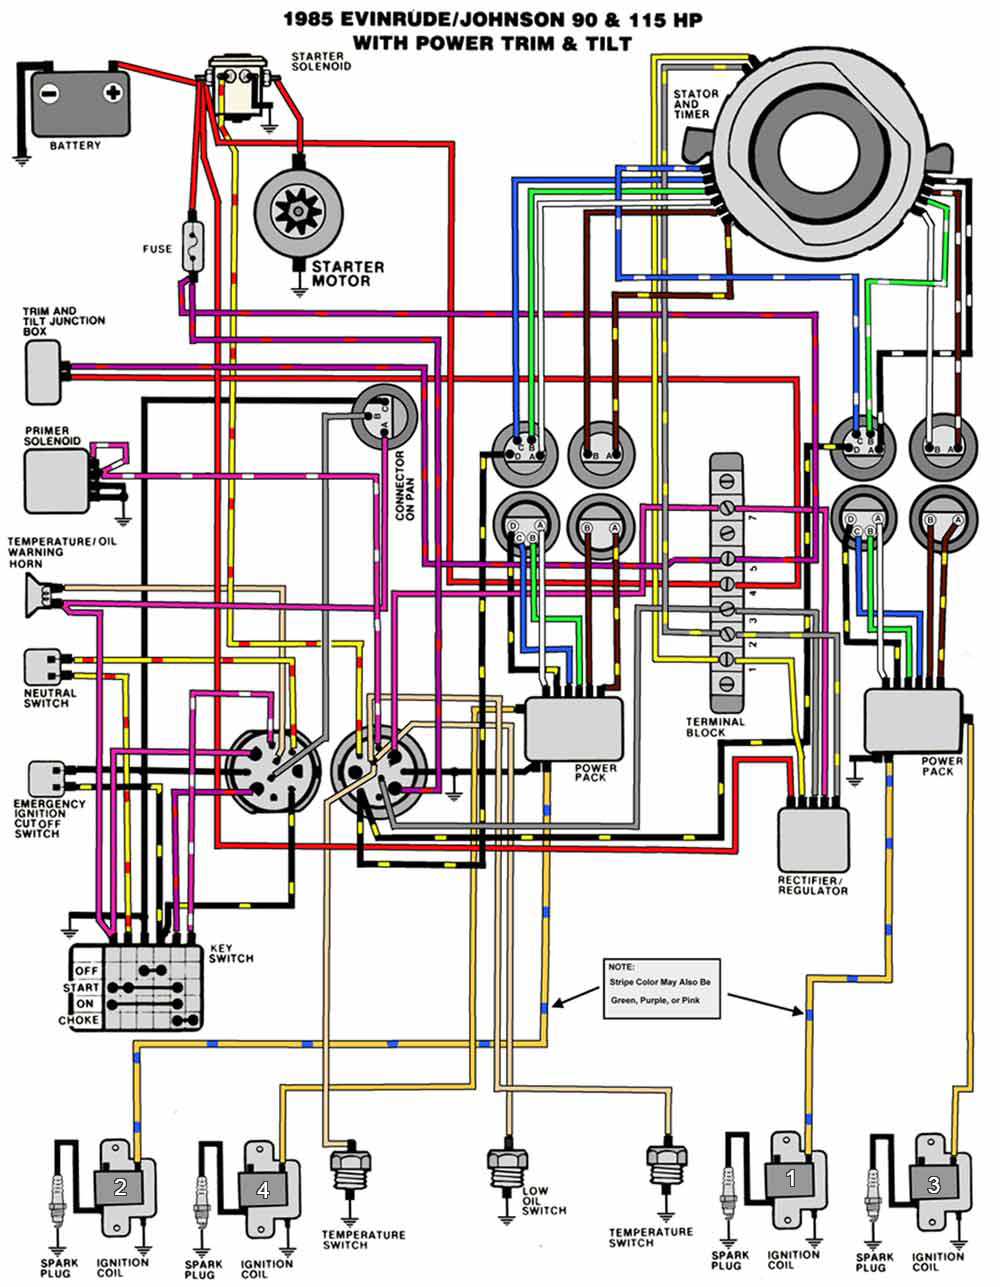 90 hp johnson outboard wiring diagram schematic wiring diagram u2022 rh tinyforge co 25 HP Johnson Wiring-Diagram Johnson Wiring Harness Diagram